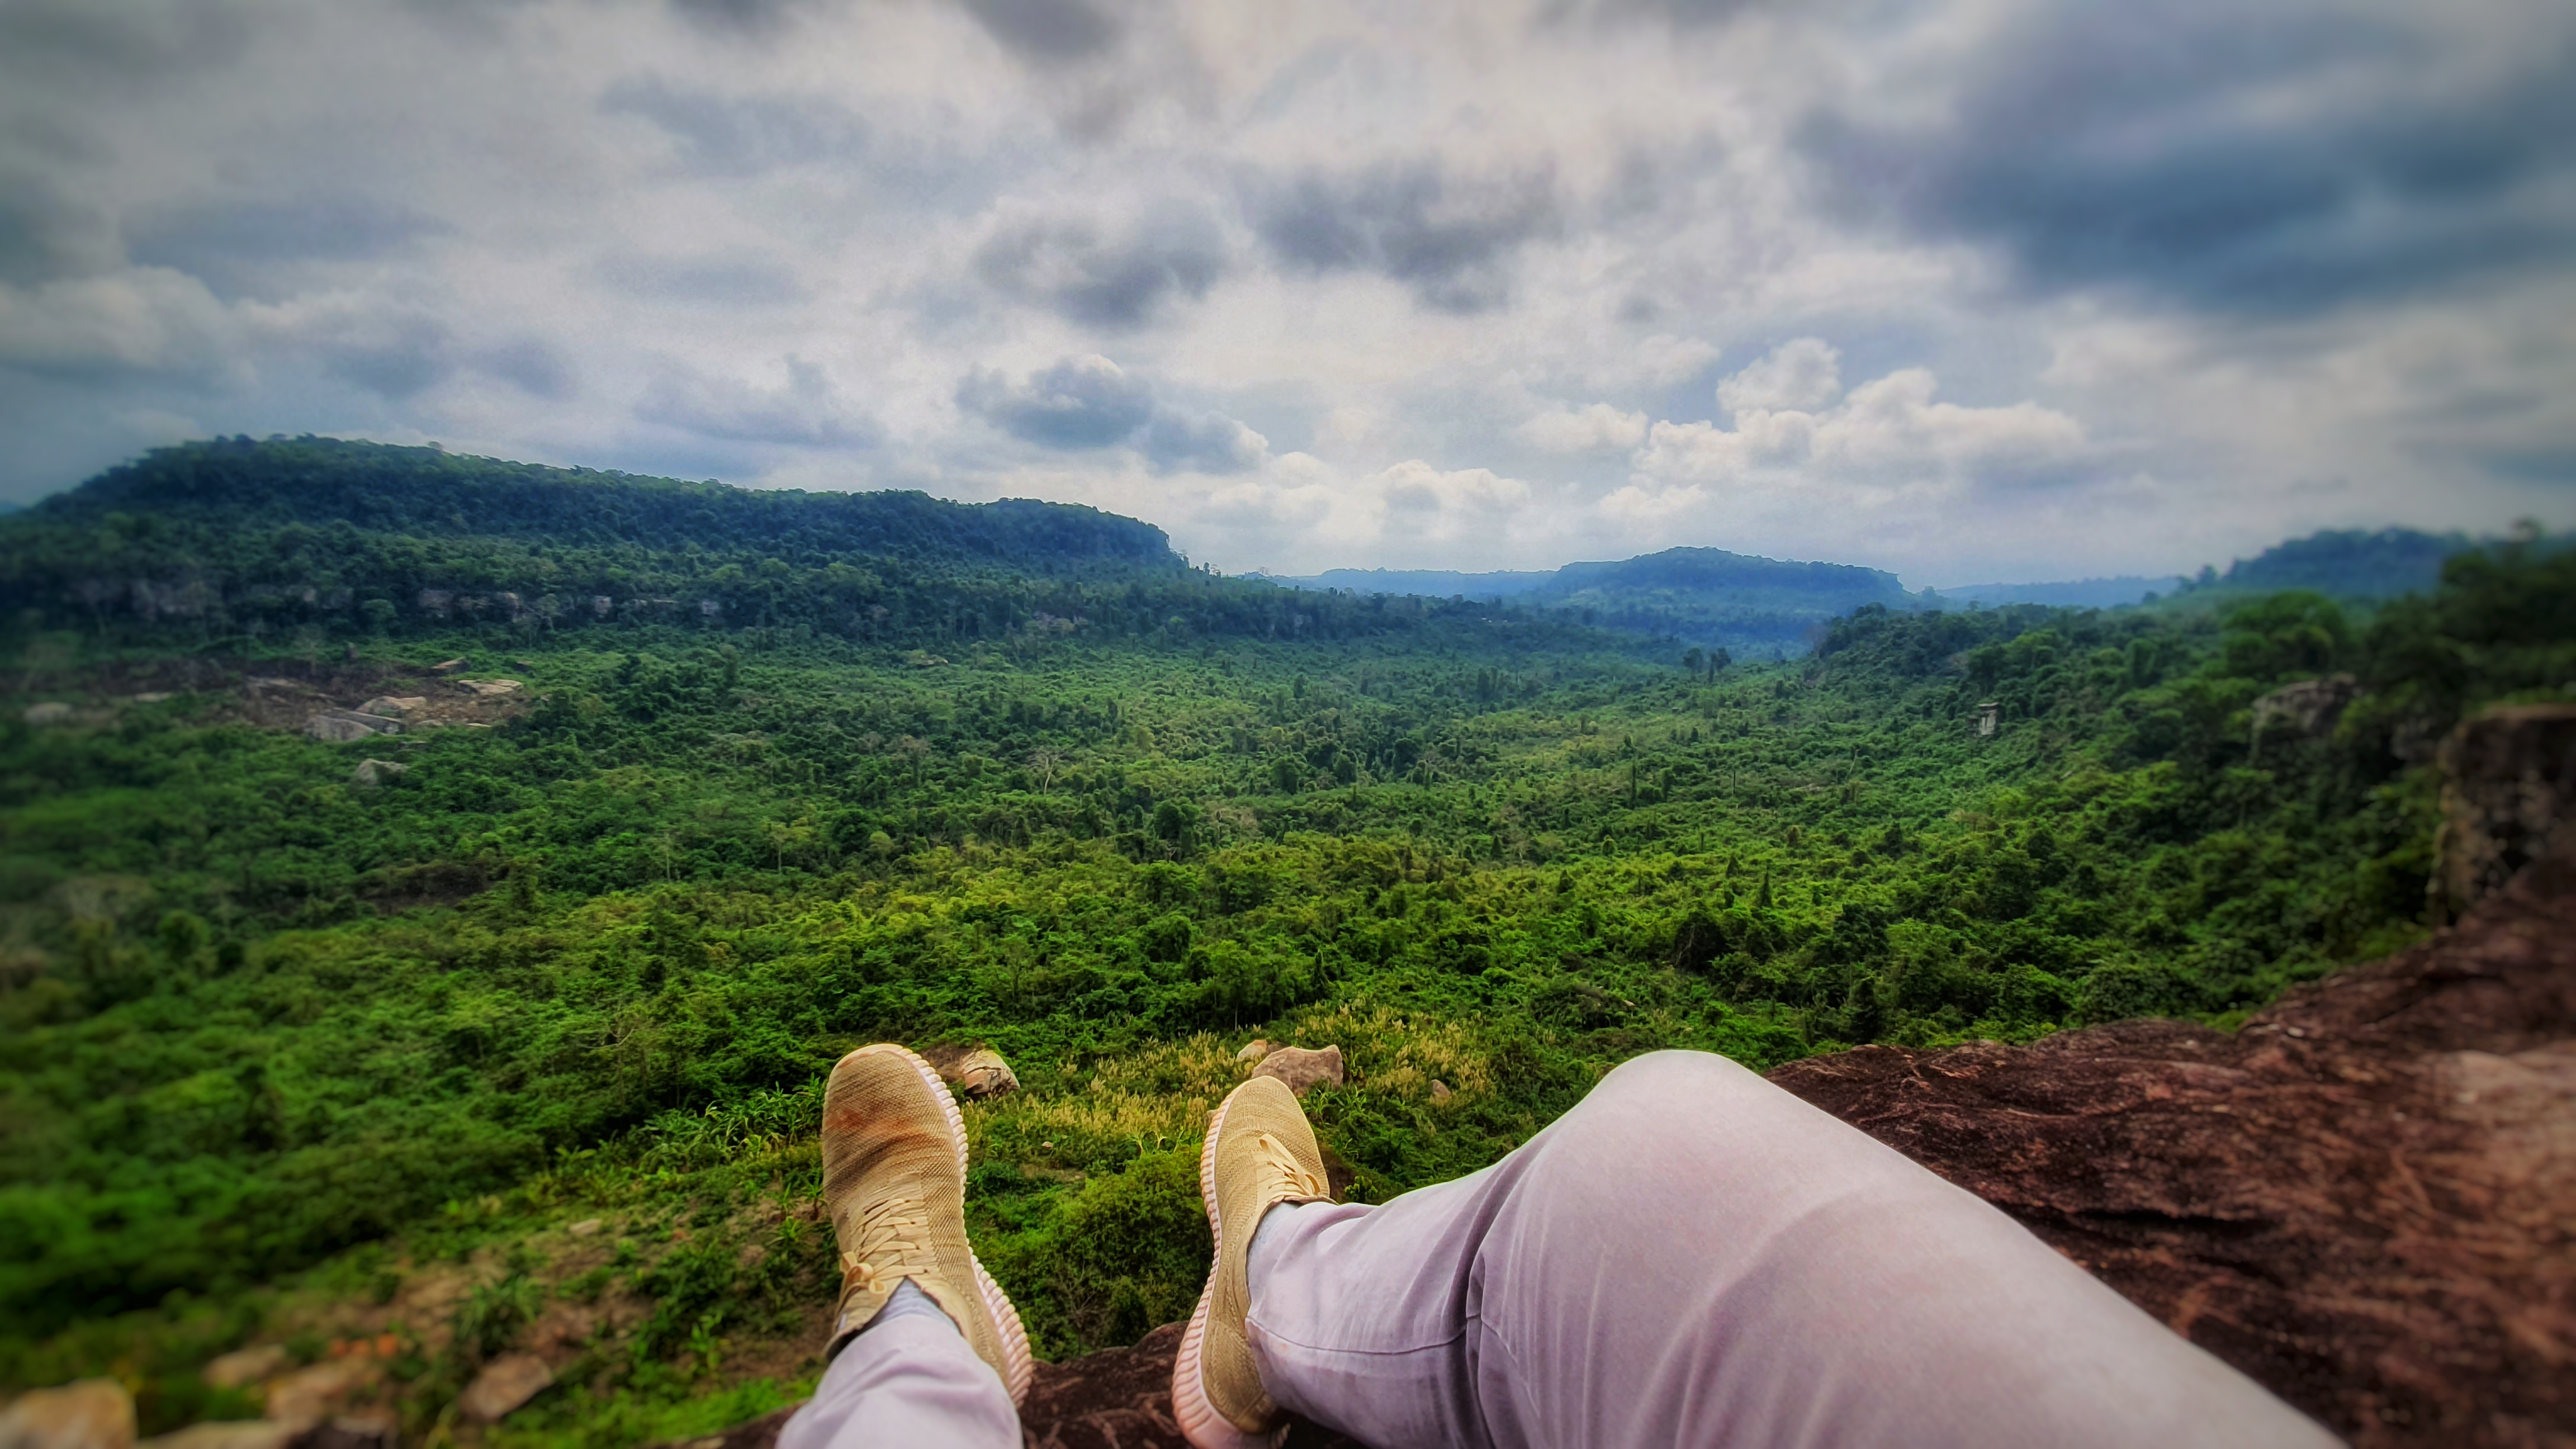 Take in the views of the landscape from the Kulen Mlountain